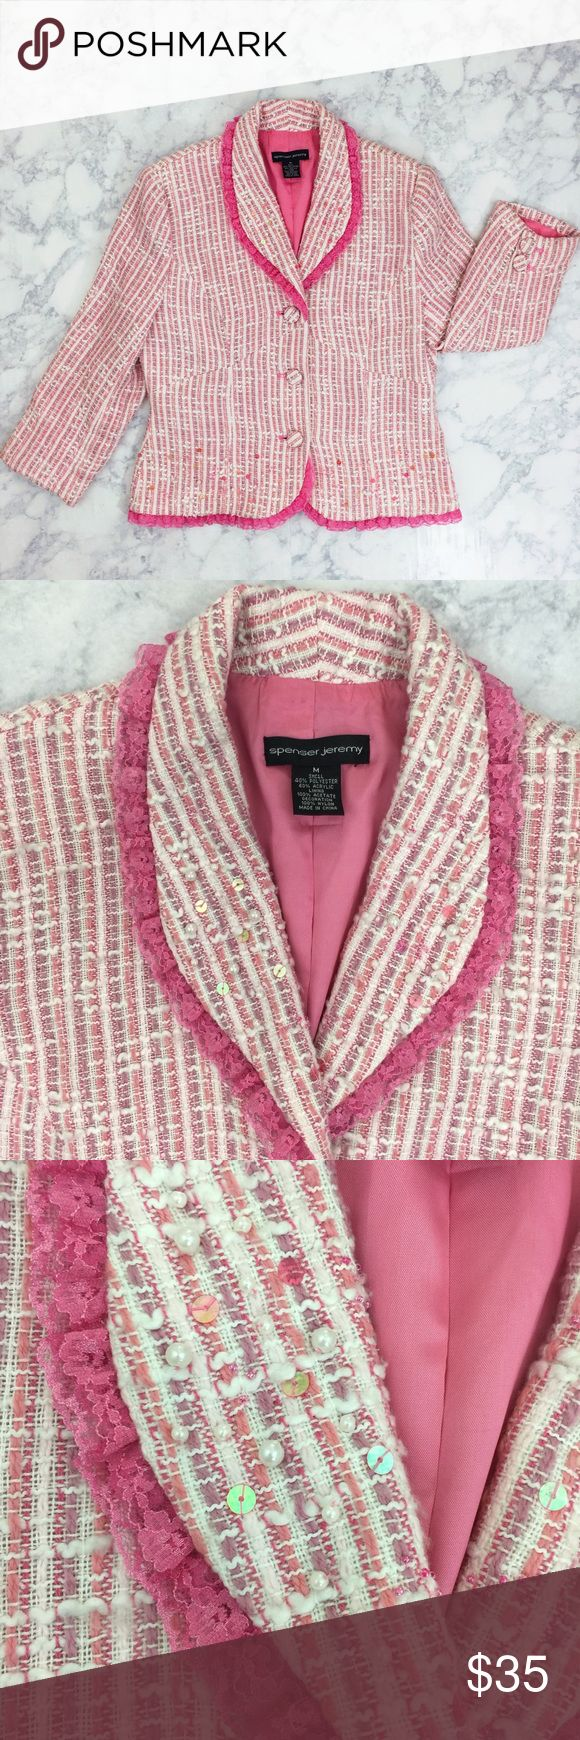 Spenser Jeremy Pink Pearl Sequin Blazer This is the cutest Blazer I have ever seen! Sequins, pearls and lace oh my! Excellent used condition. Spenser Jeremy Jackets & Coats Blazers